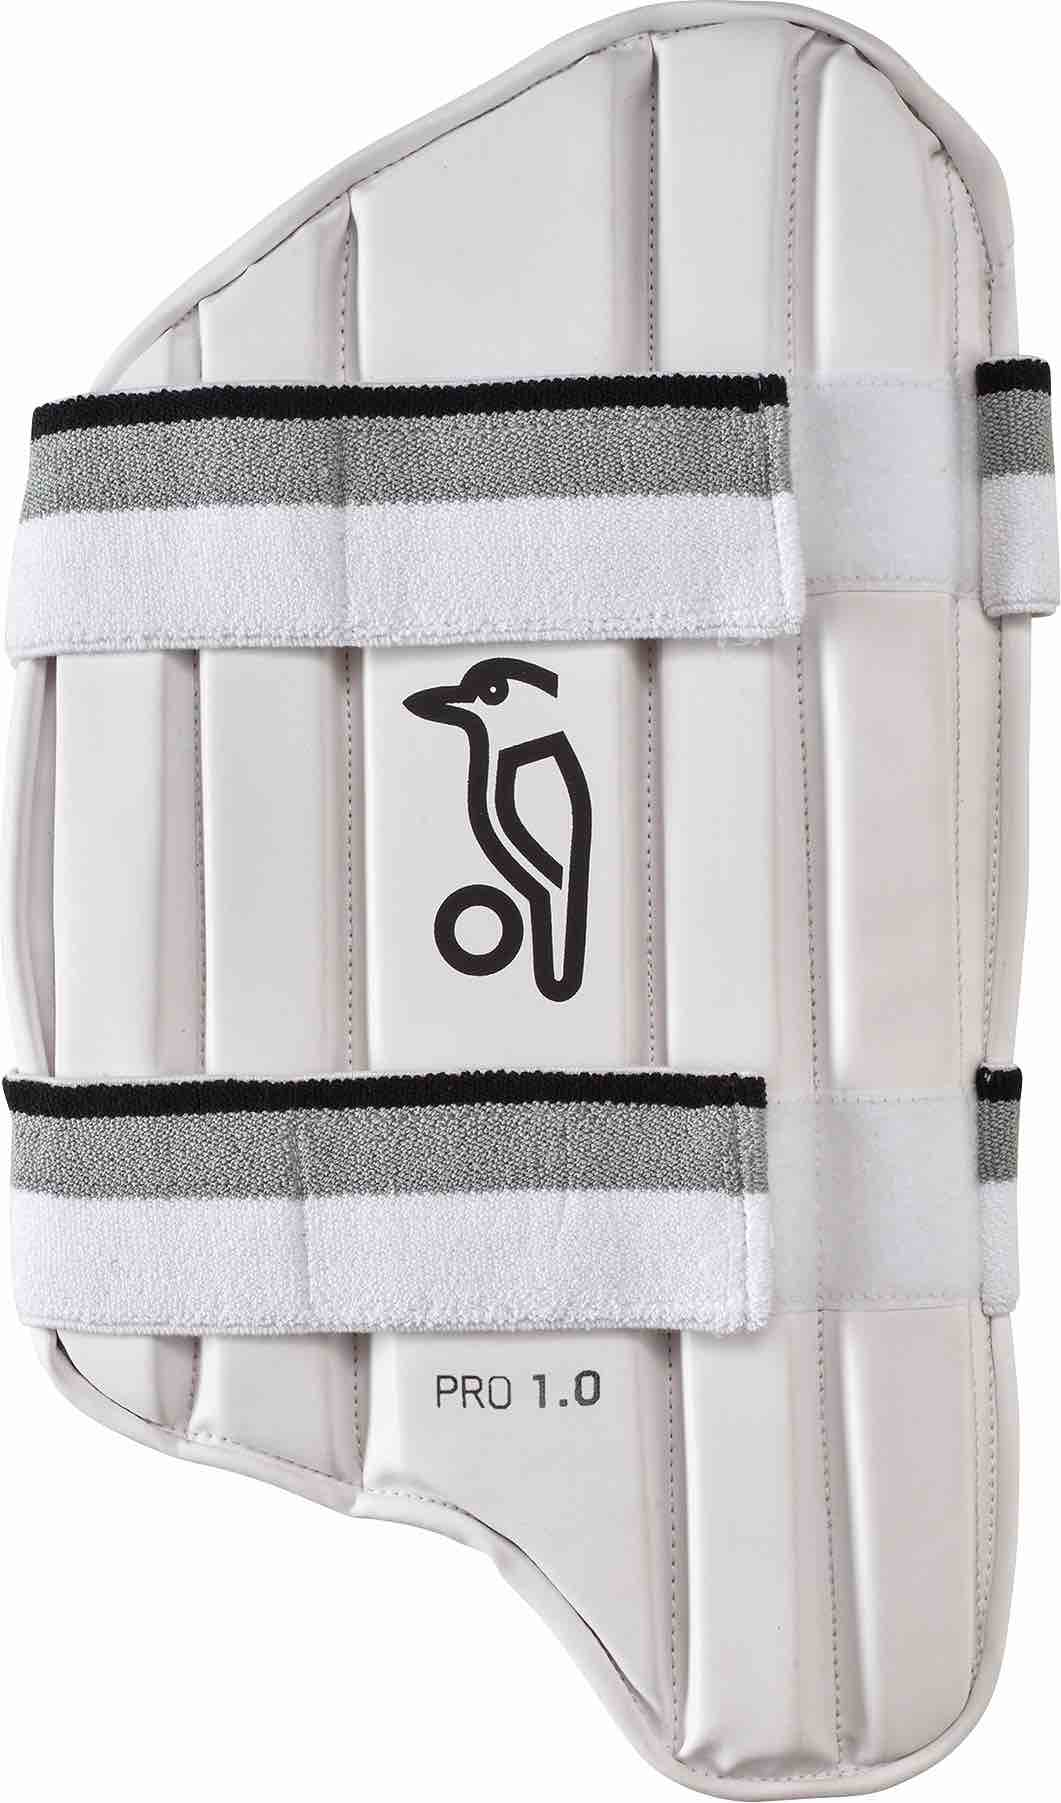 Kookaburra Pro 1.0 Thigh Guard - Front copy